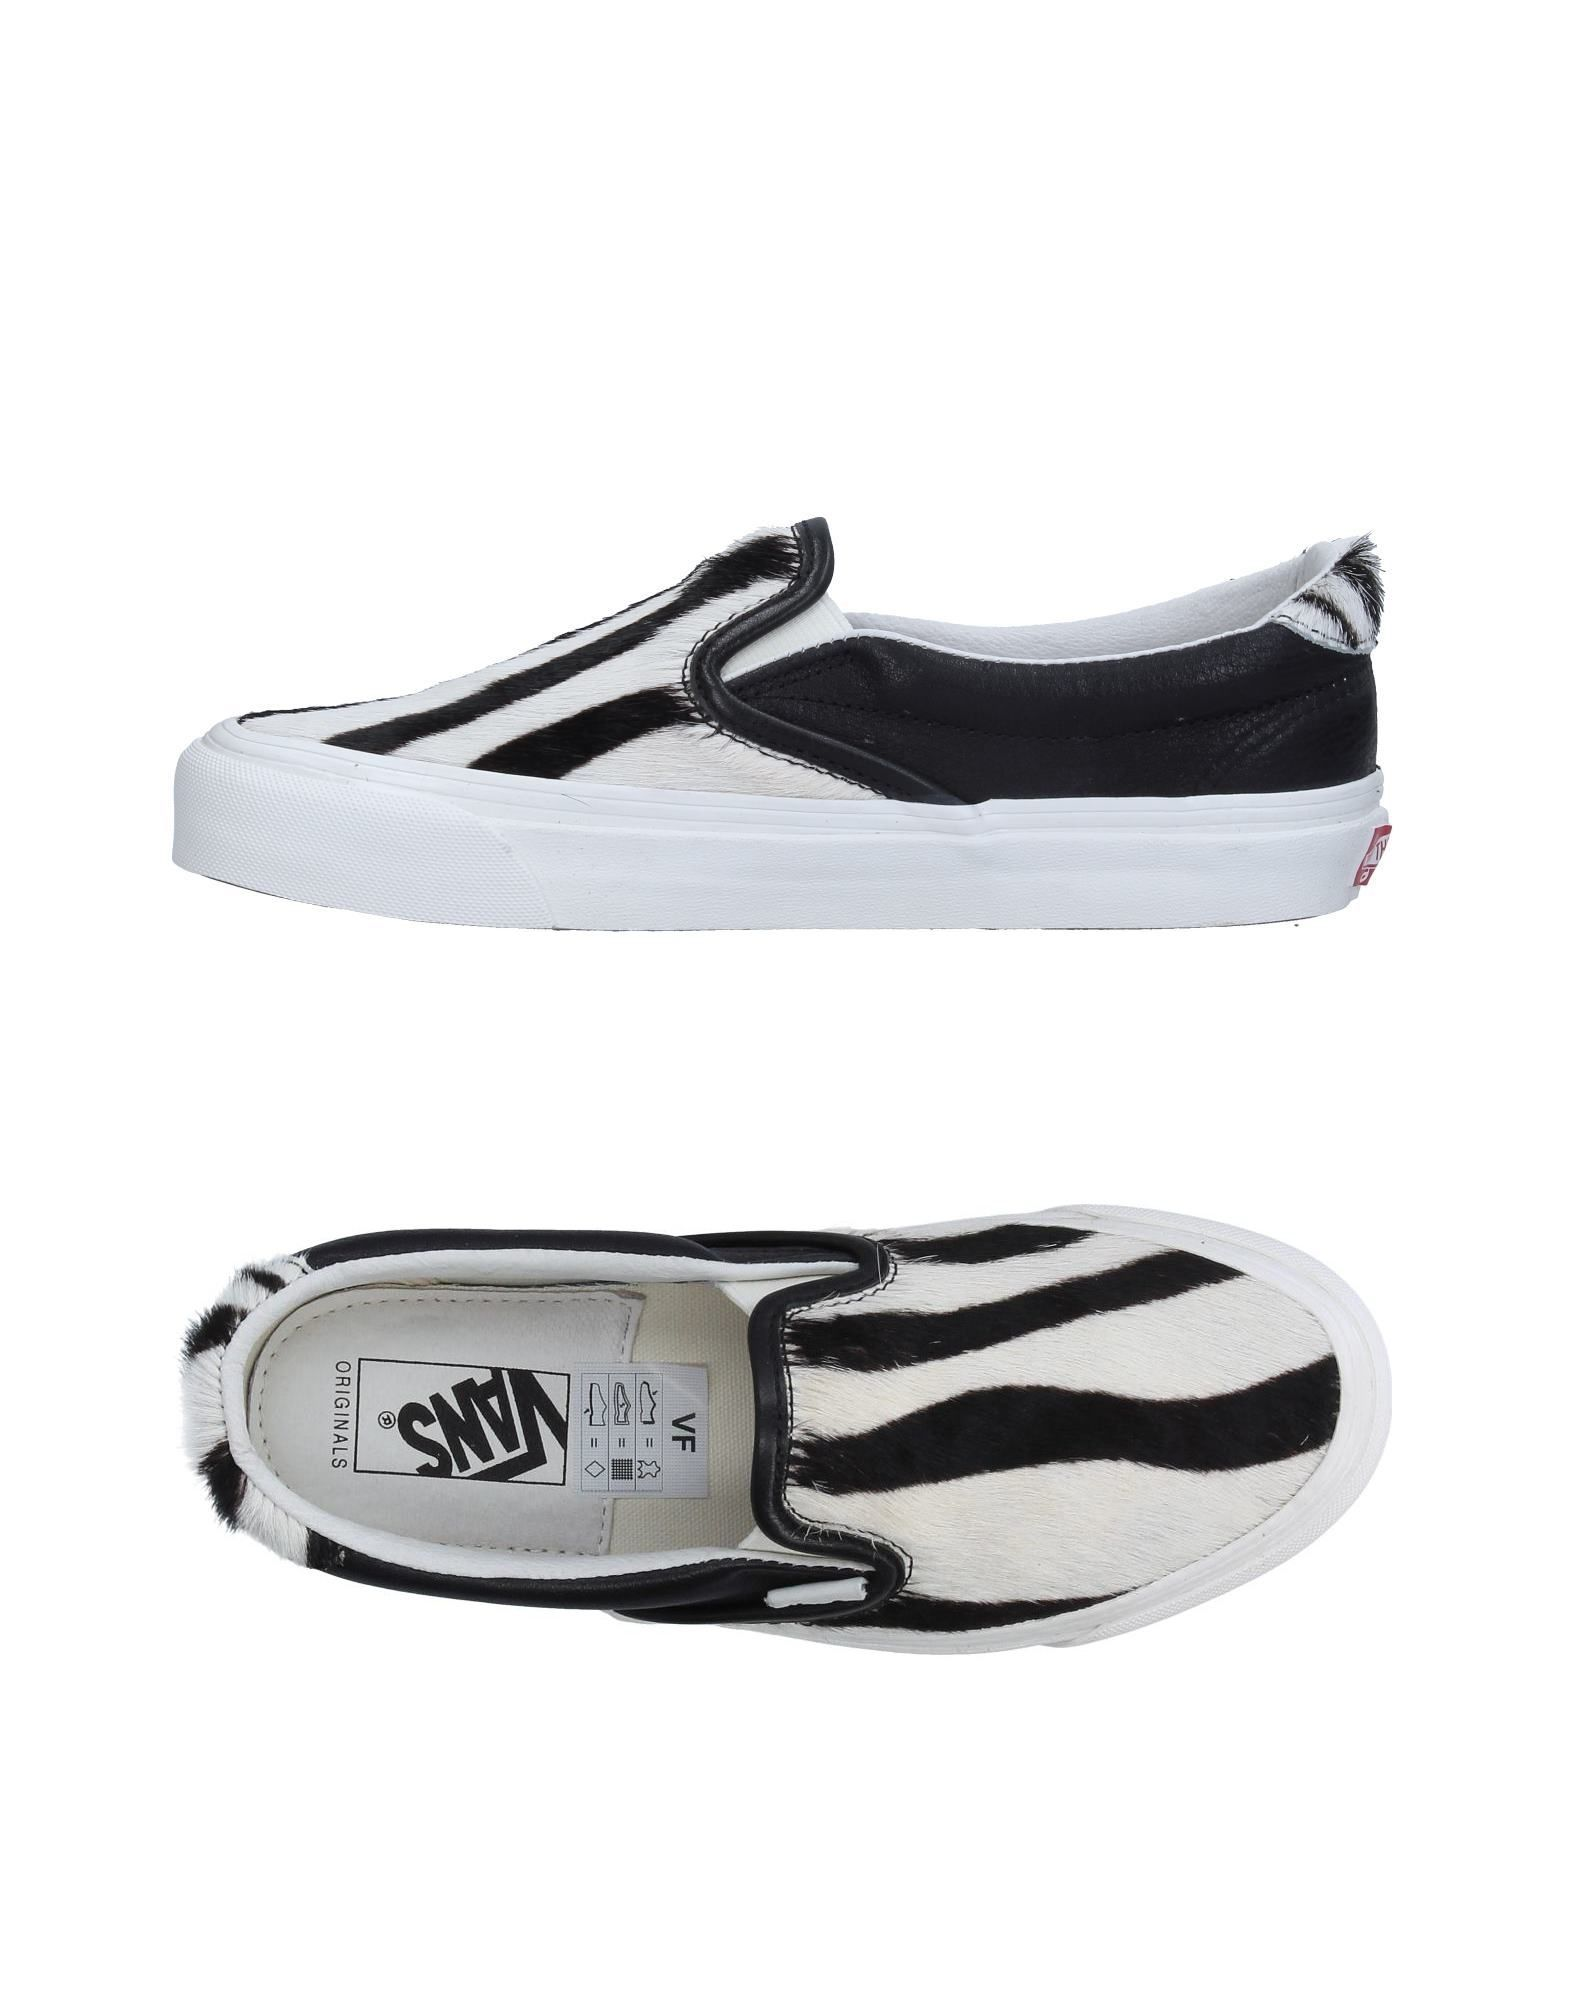 A buon mercato Sneakers Vans Donna - 11313456GH